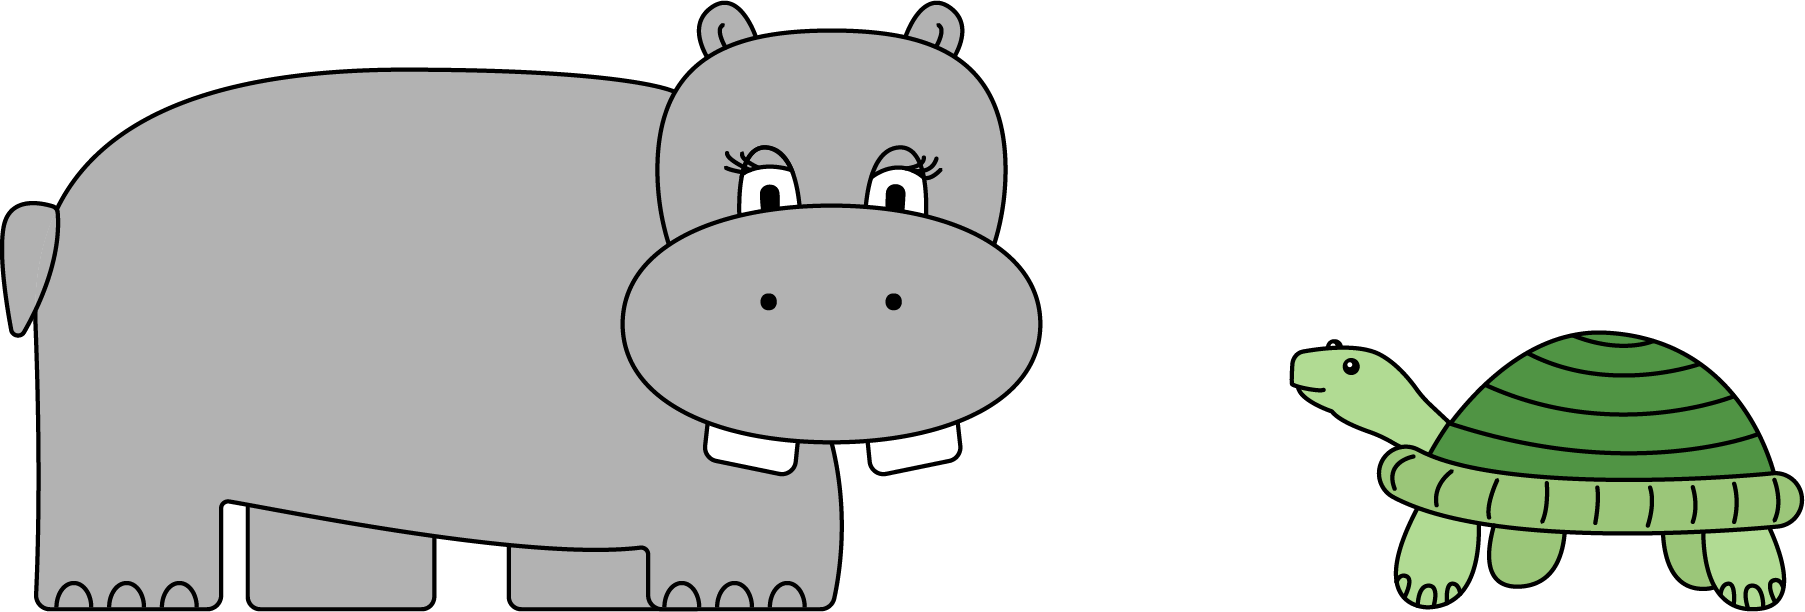 """A hippopotamus with 2 eyes and 4 legs and a giant turtle with 2 eyes and 4 legs."""